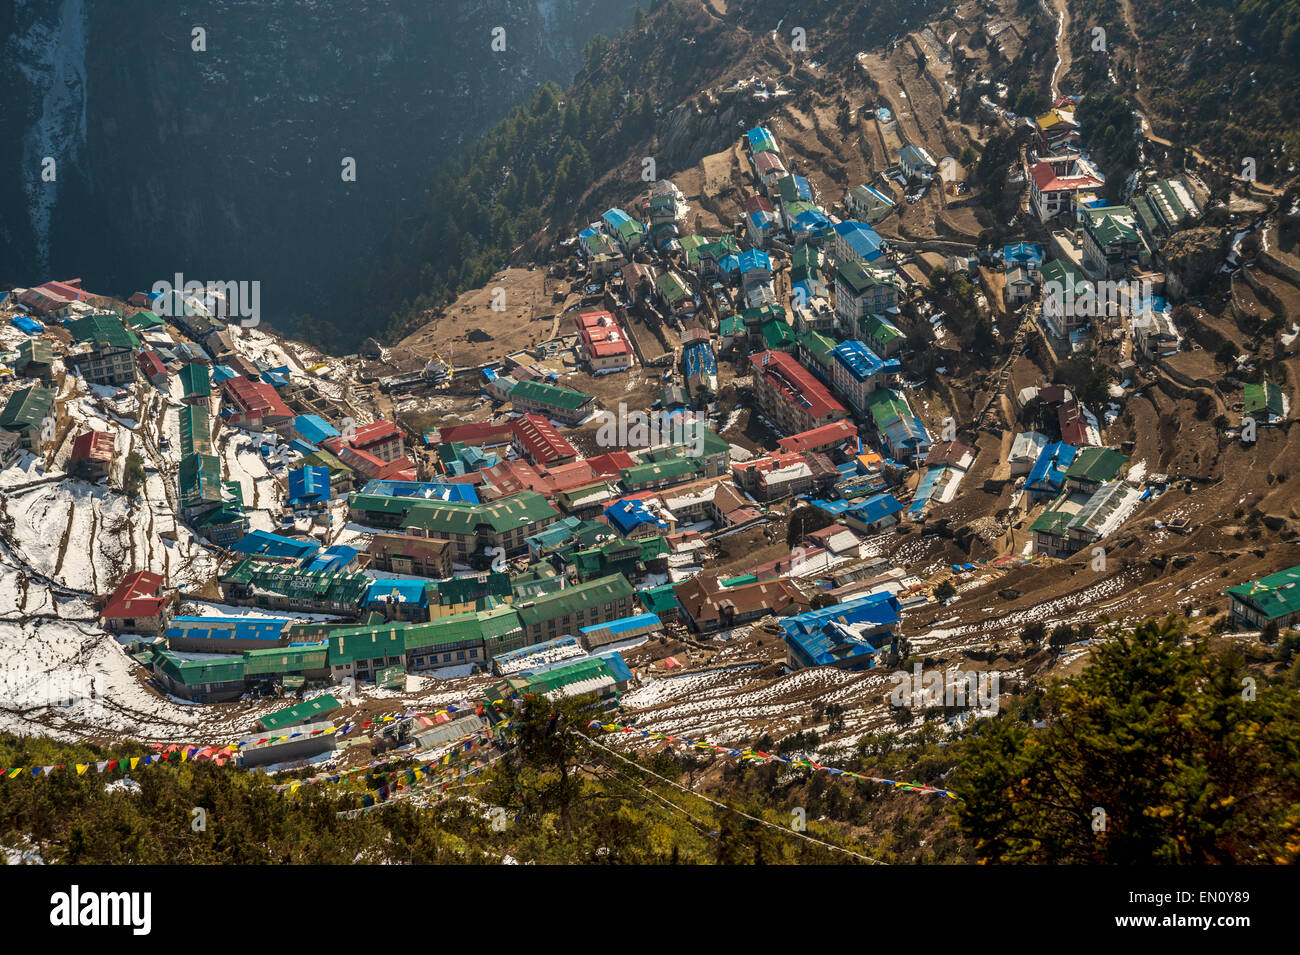 Namche Bazaar, Nepal - 9 March 2015: Aerial view of Namche Bazaar in the Everest Region of Nepal - Stock Image